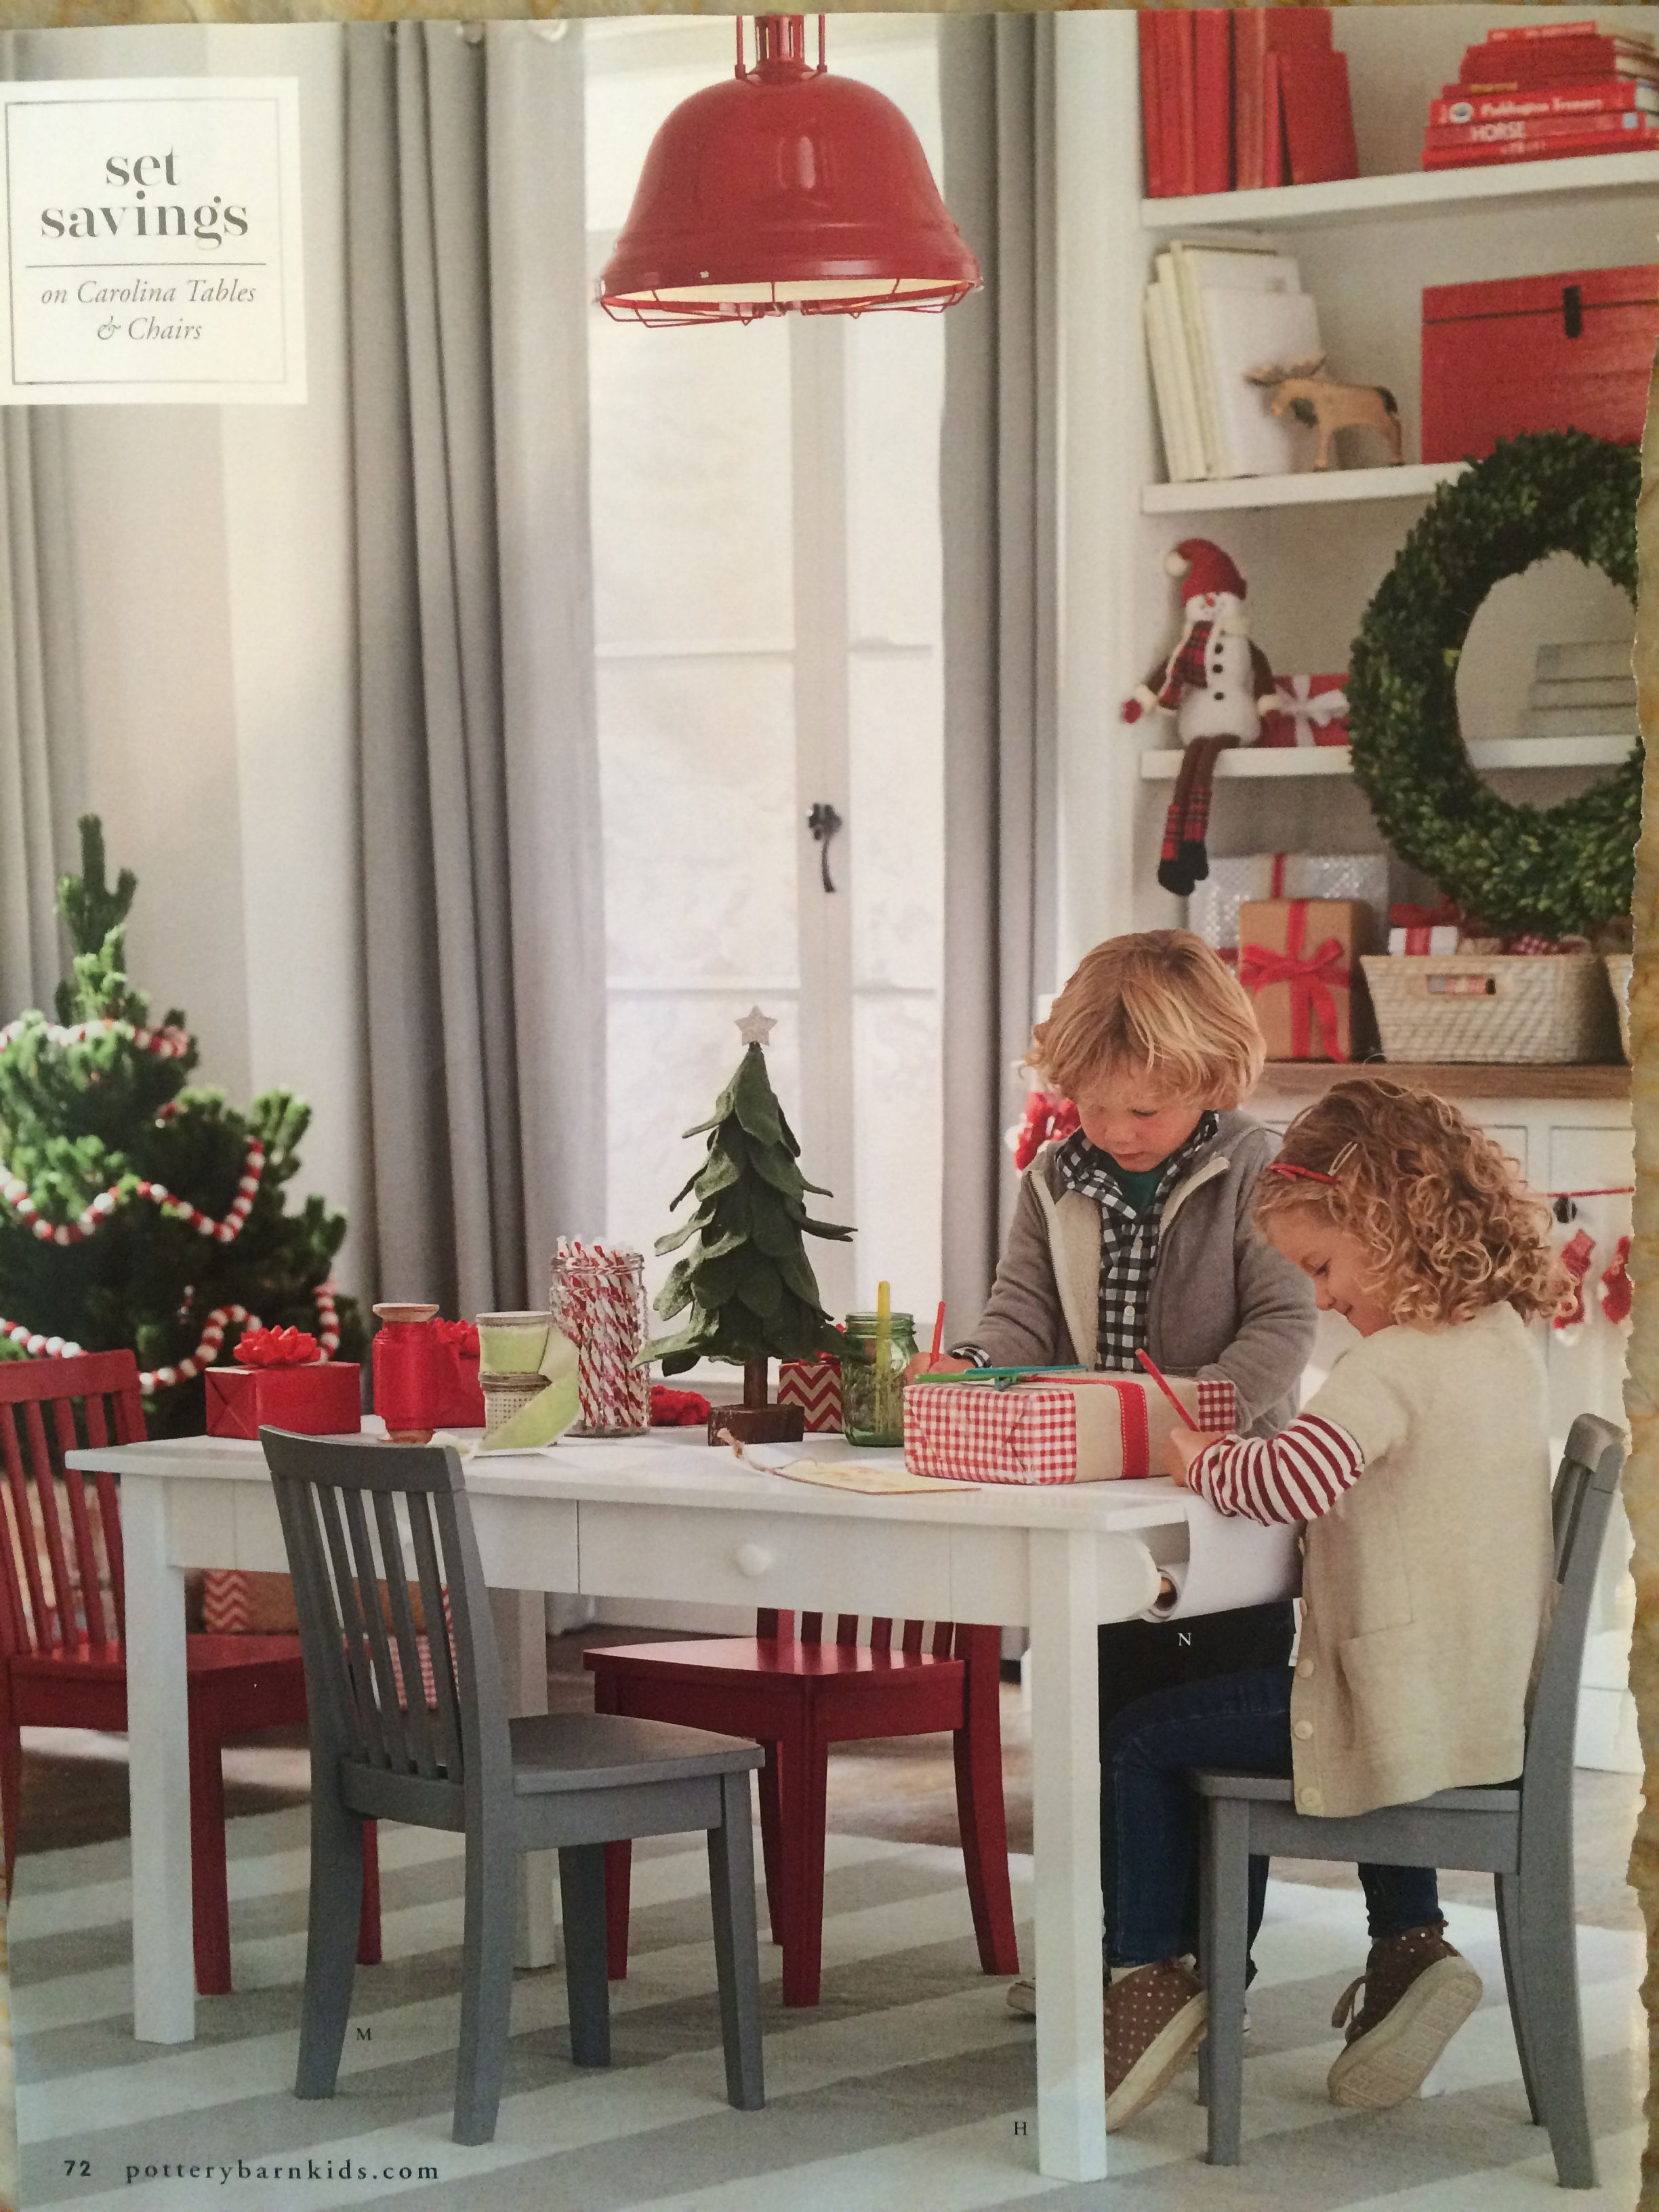 45+ Pottery barn craft table used ideas in 2021